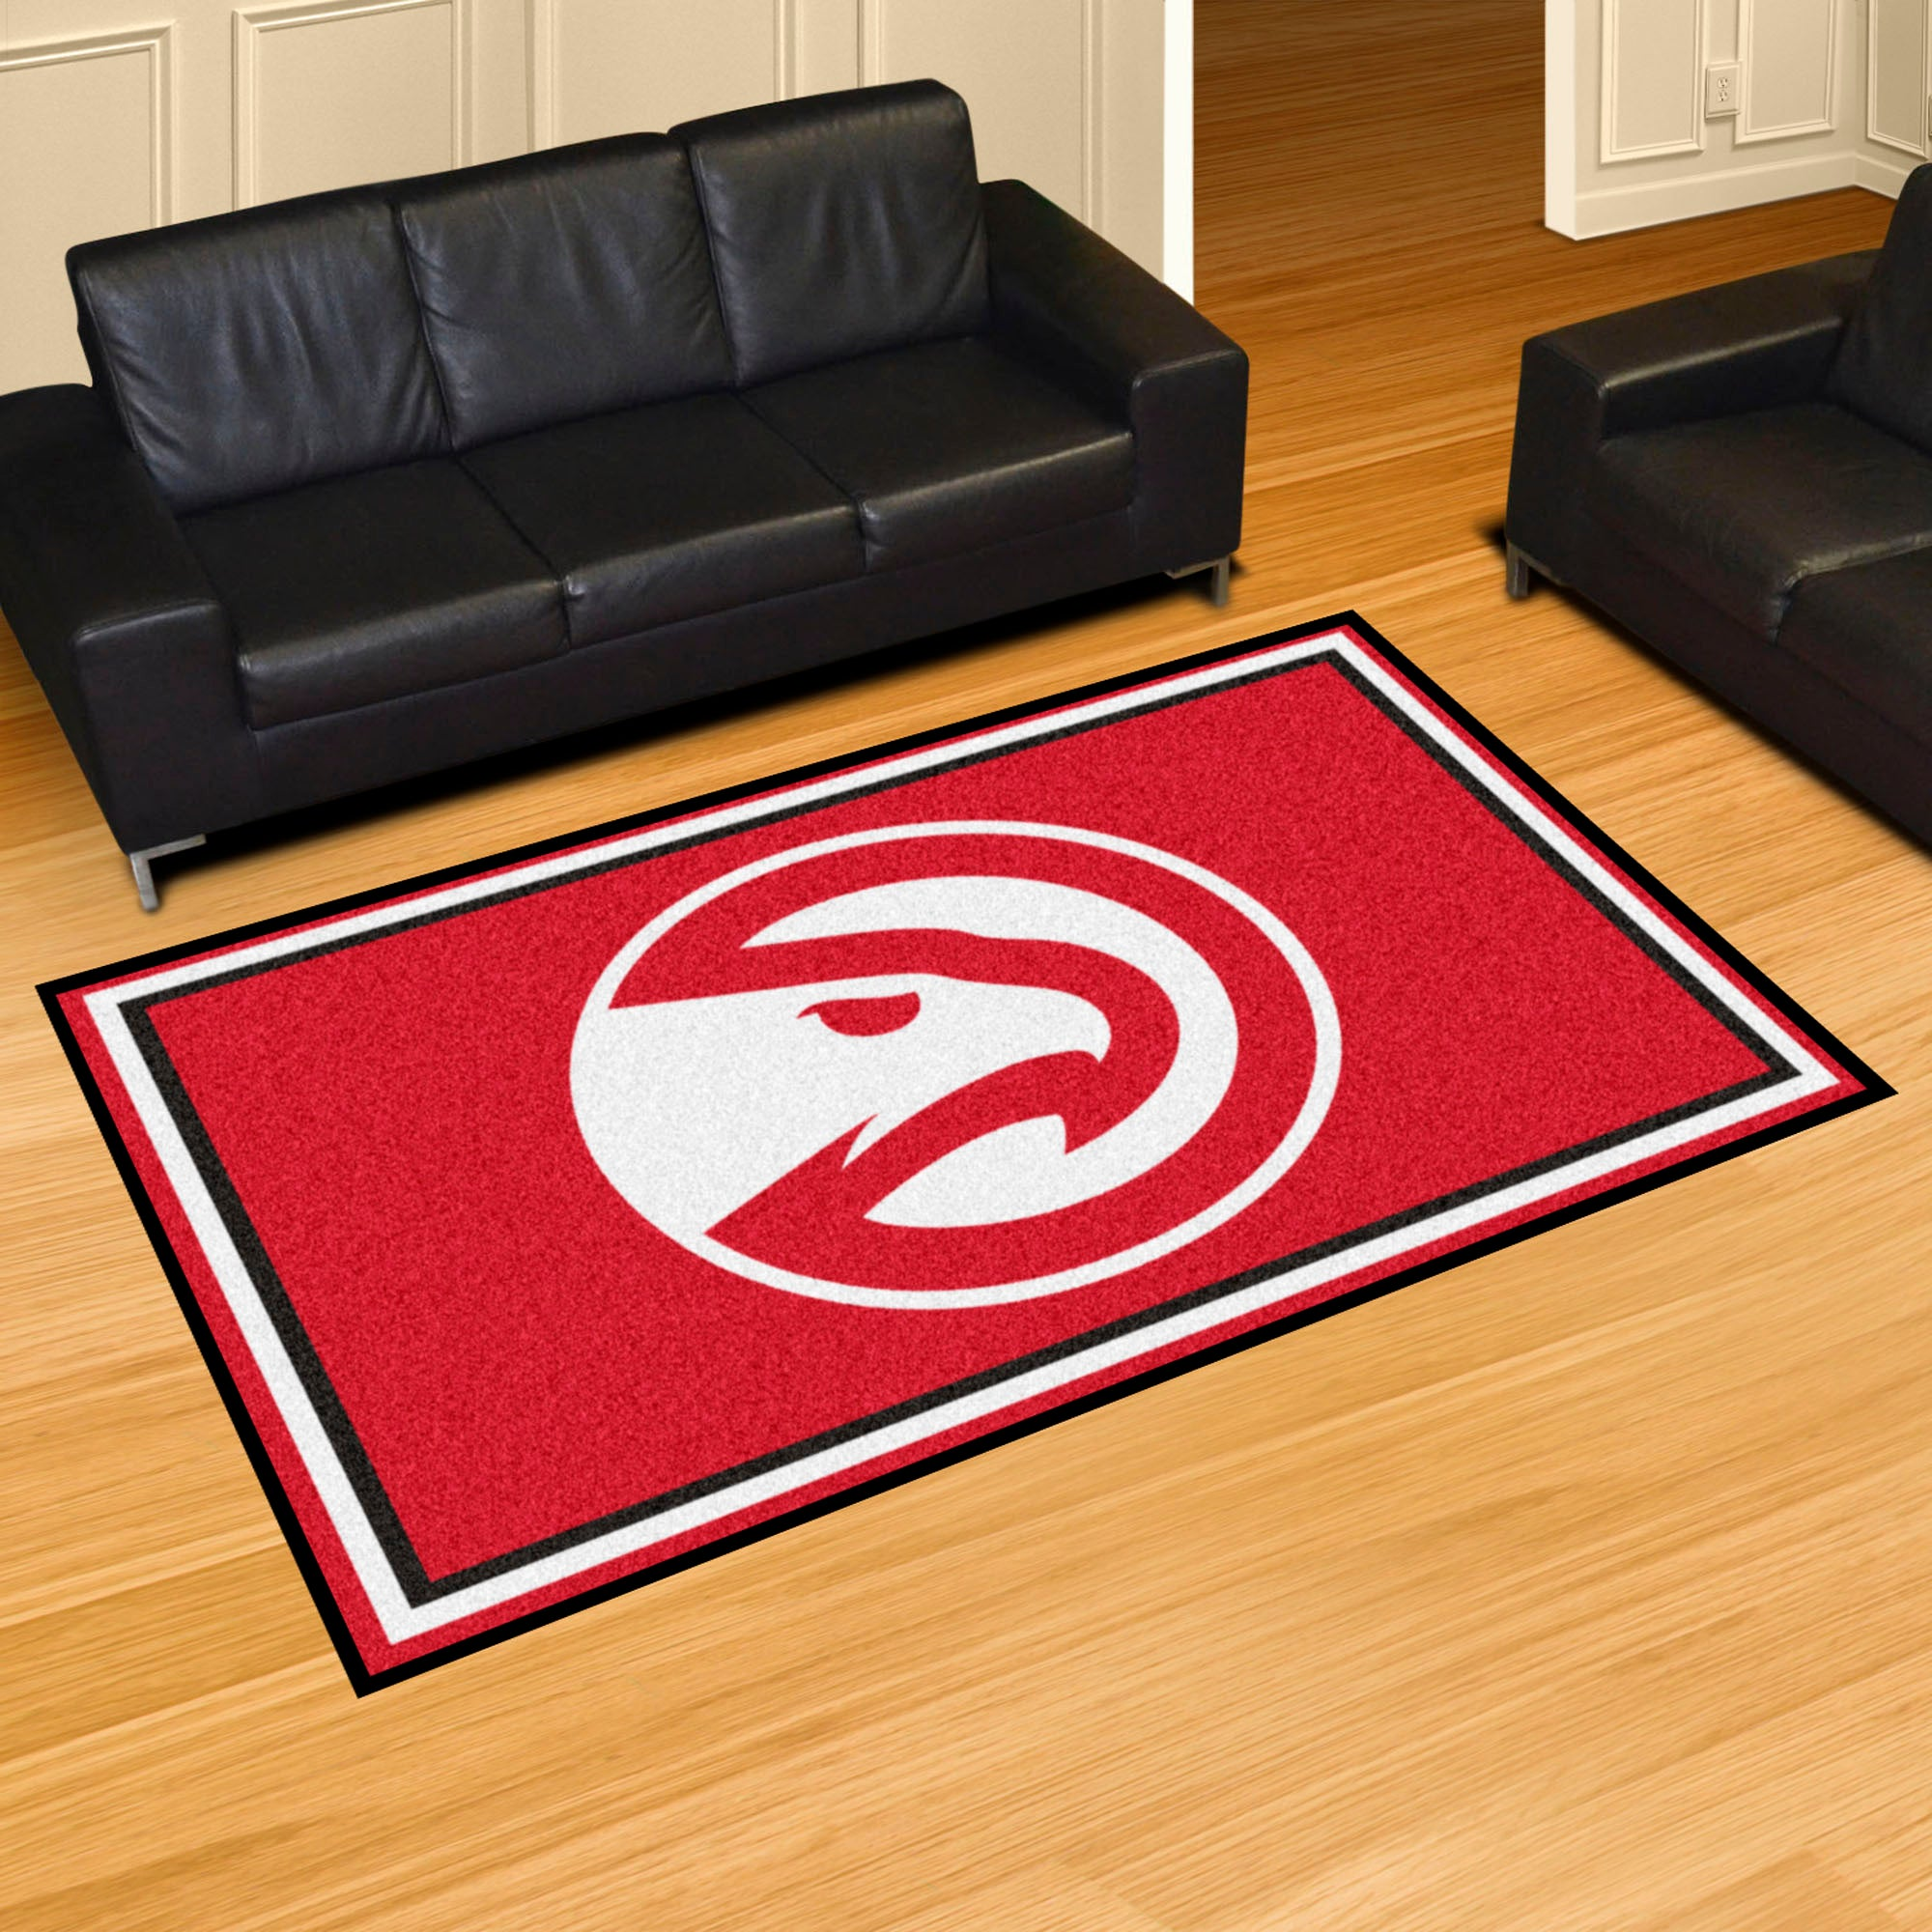 Atlanta Hawks Rug  NBA Area Rug - Fan Rugs